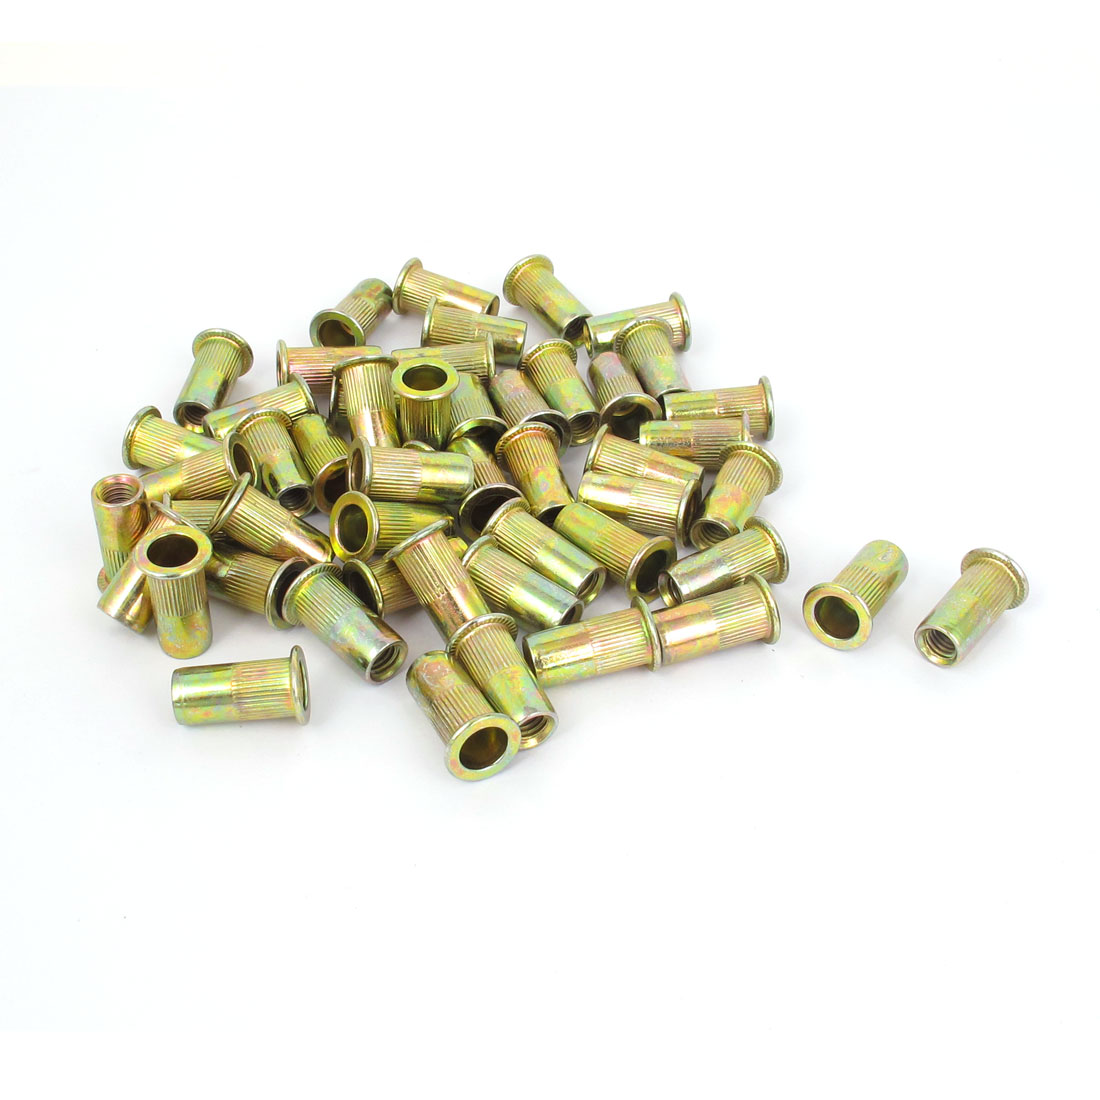 50 Pcs M6x19.5mm Flat Head Ribbed Body Blind Rivet Nut Insert Nutserts